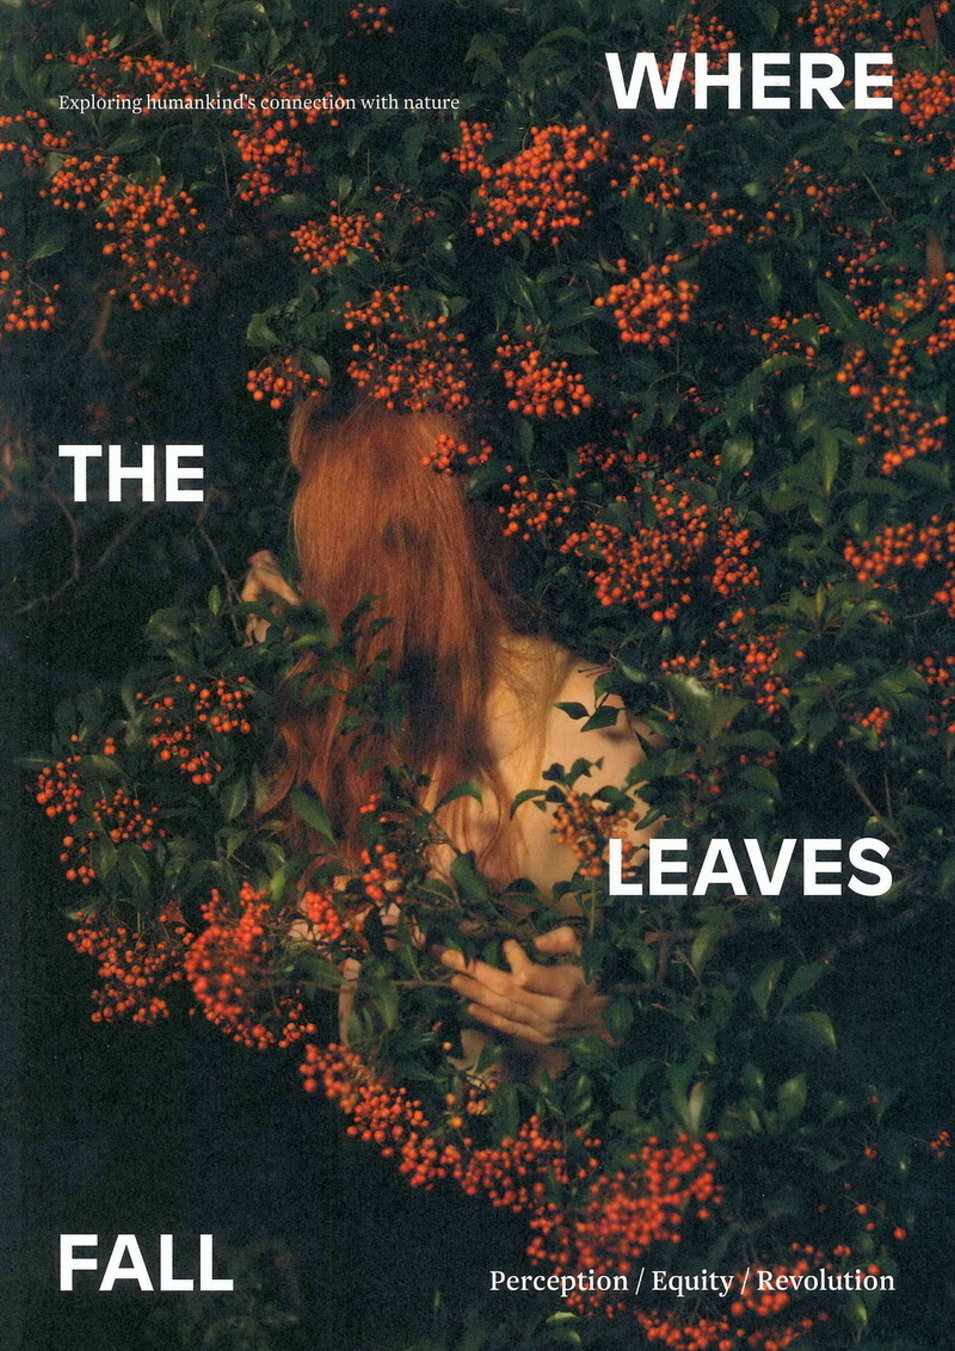 WHERE THE LEAVE...